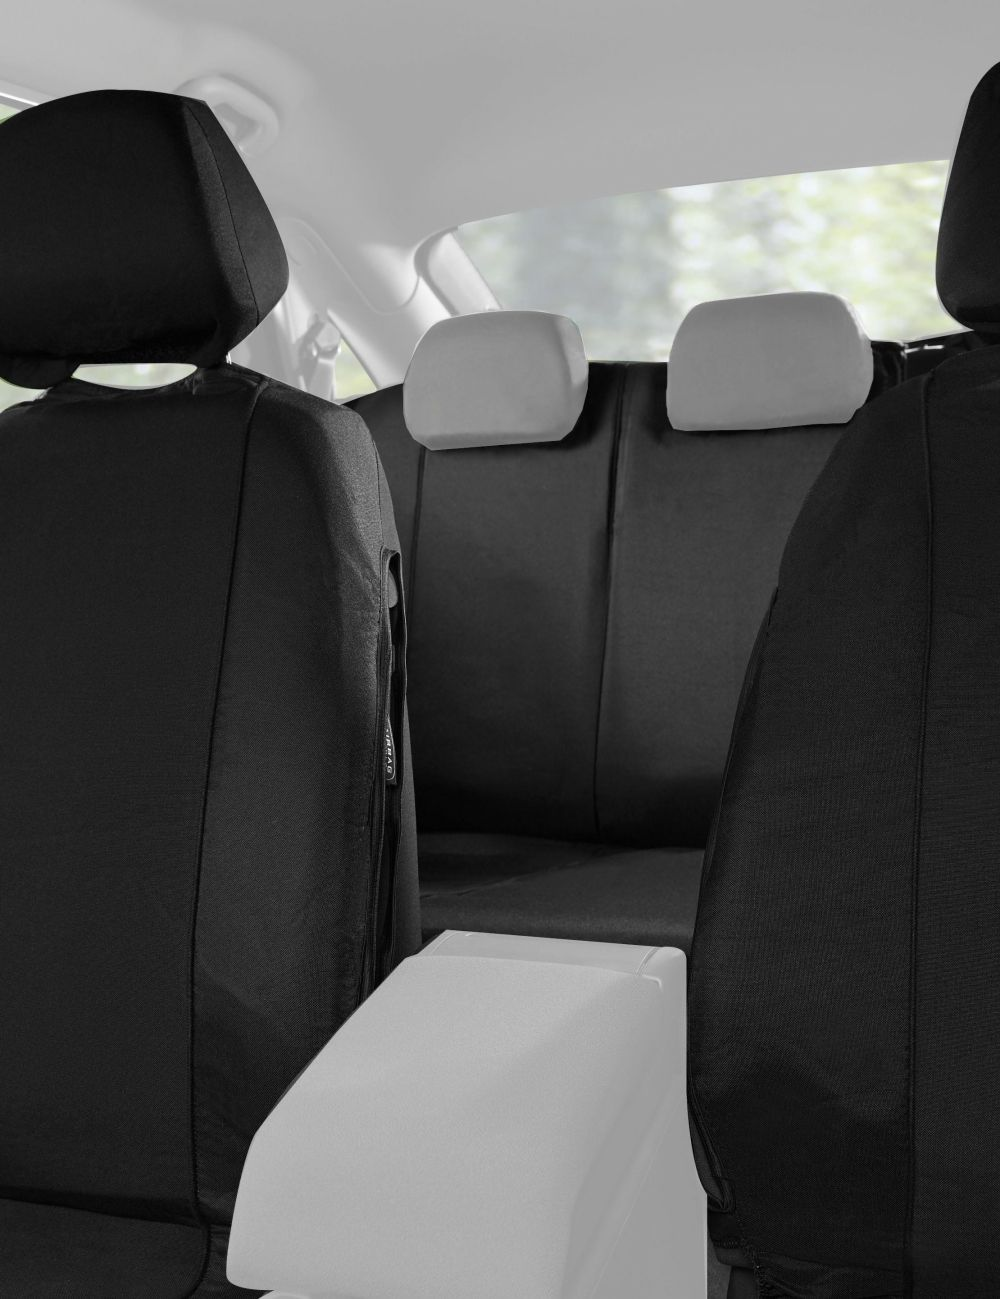 Halfords Car Seat Covers Full Set Black Fabric Universal Protector